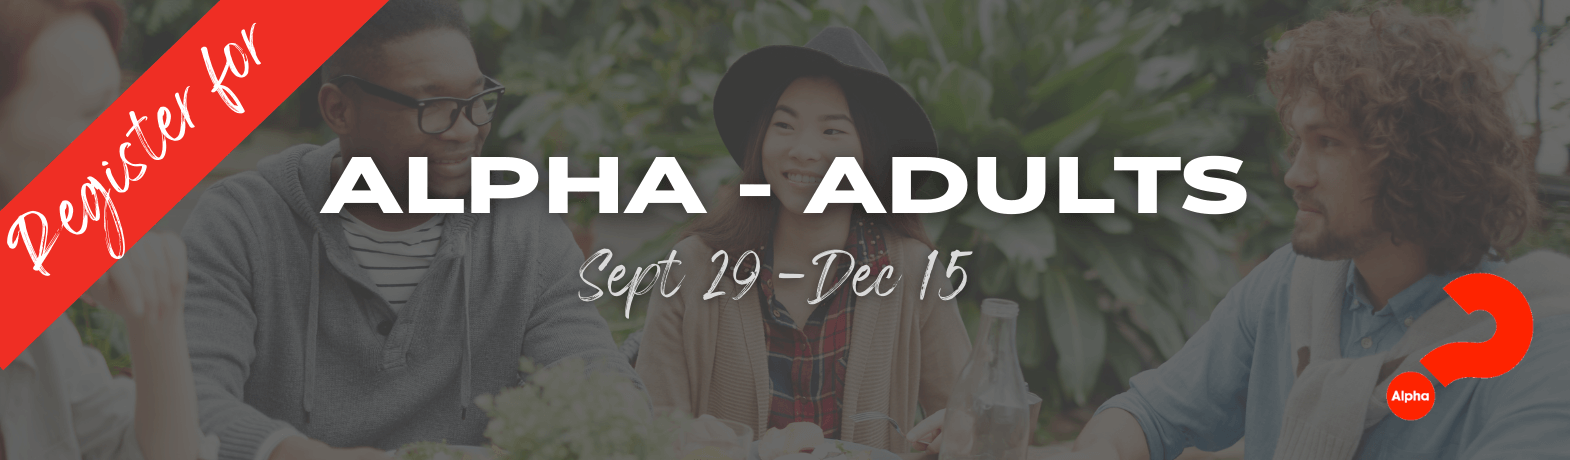 Alpha Course 2021 - Adults